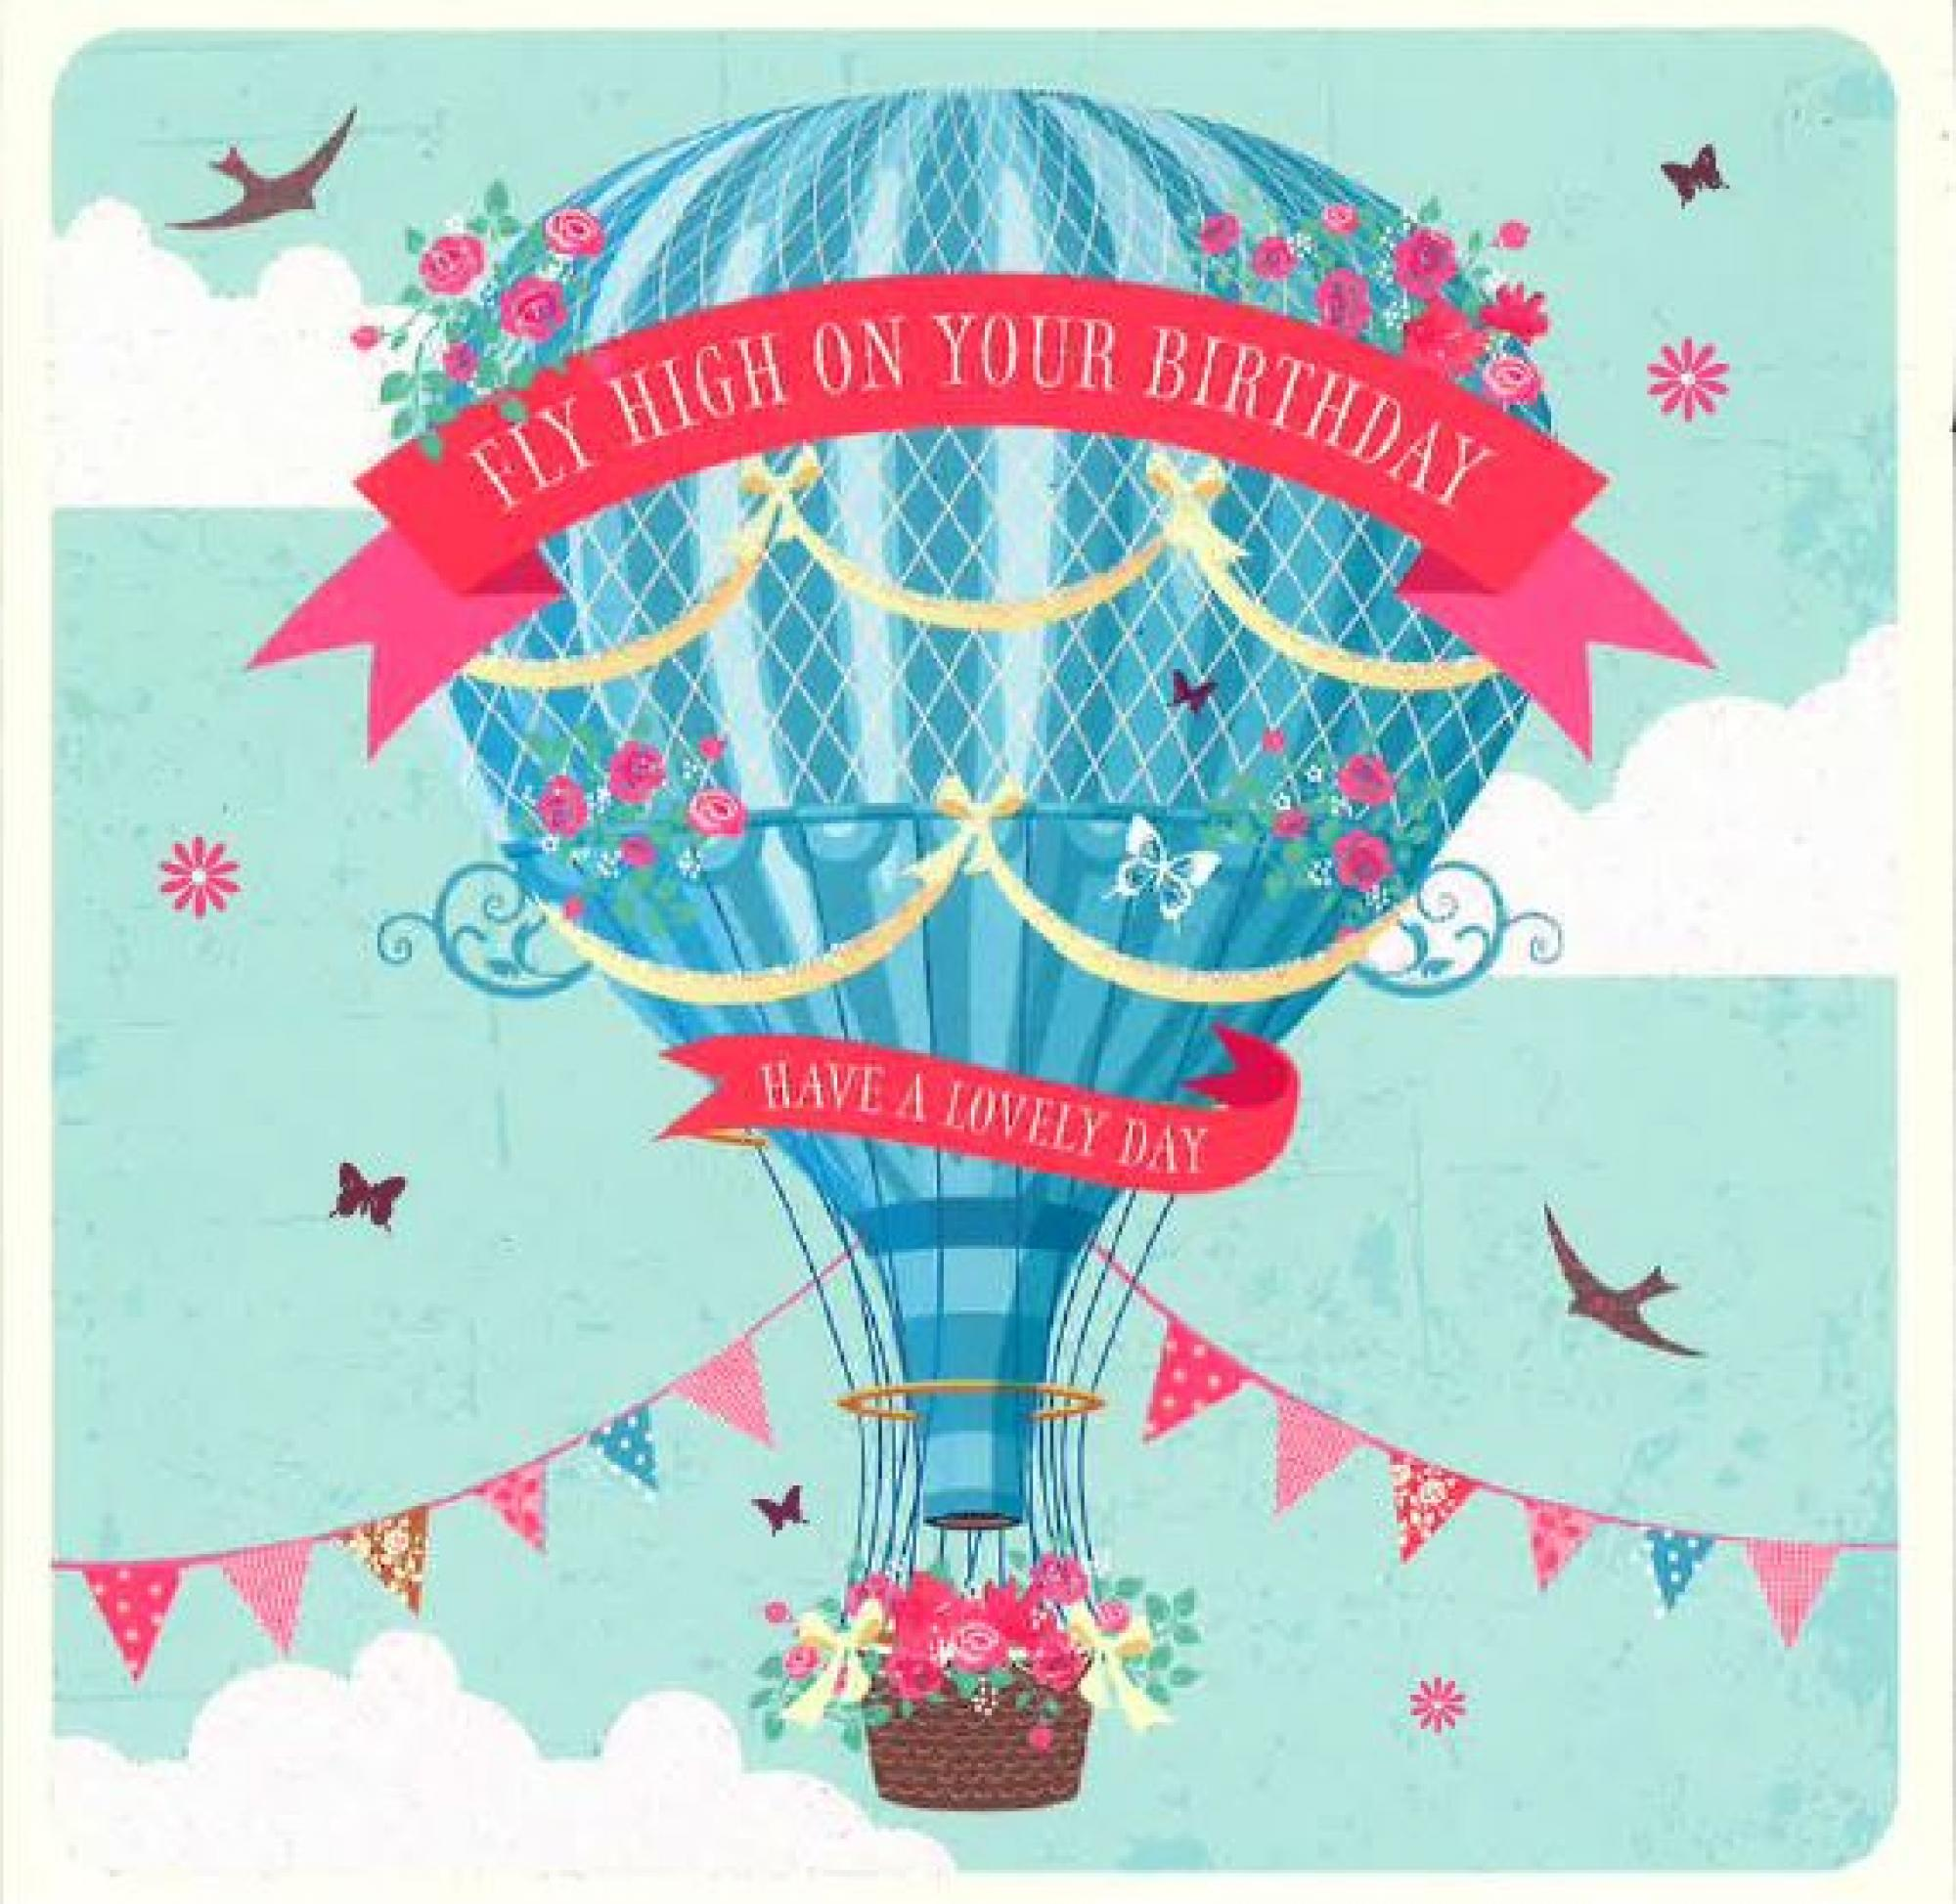 Hot air balloon happy birthday card cancer research uk online shop hot air balloon happy birthday card bookmarktalkfo Image collections